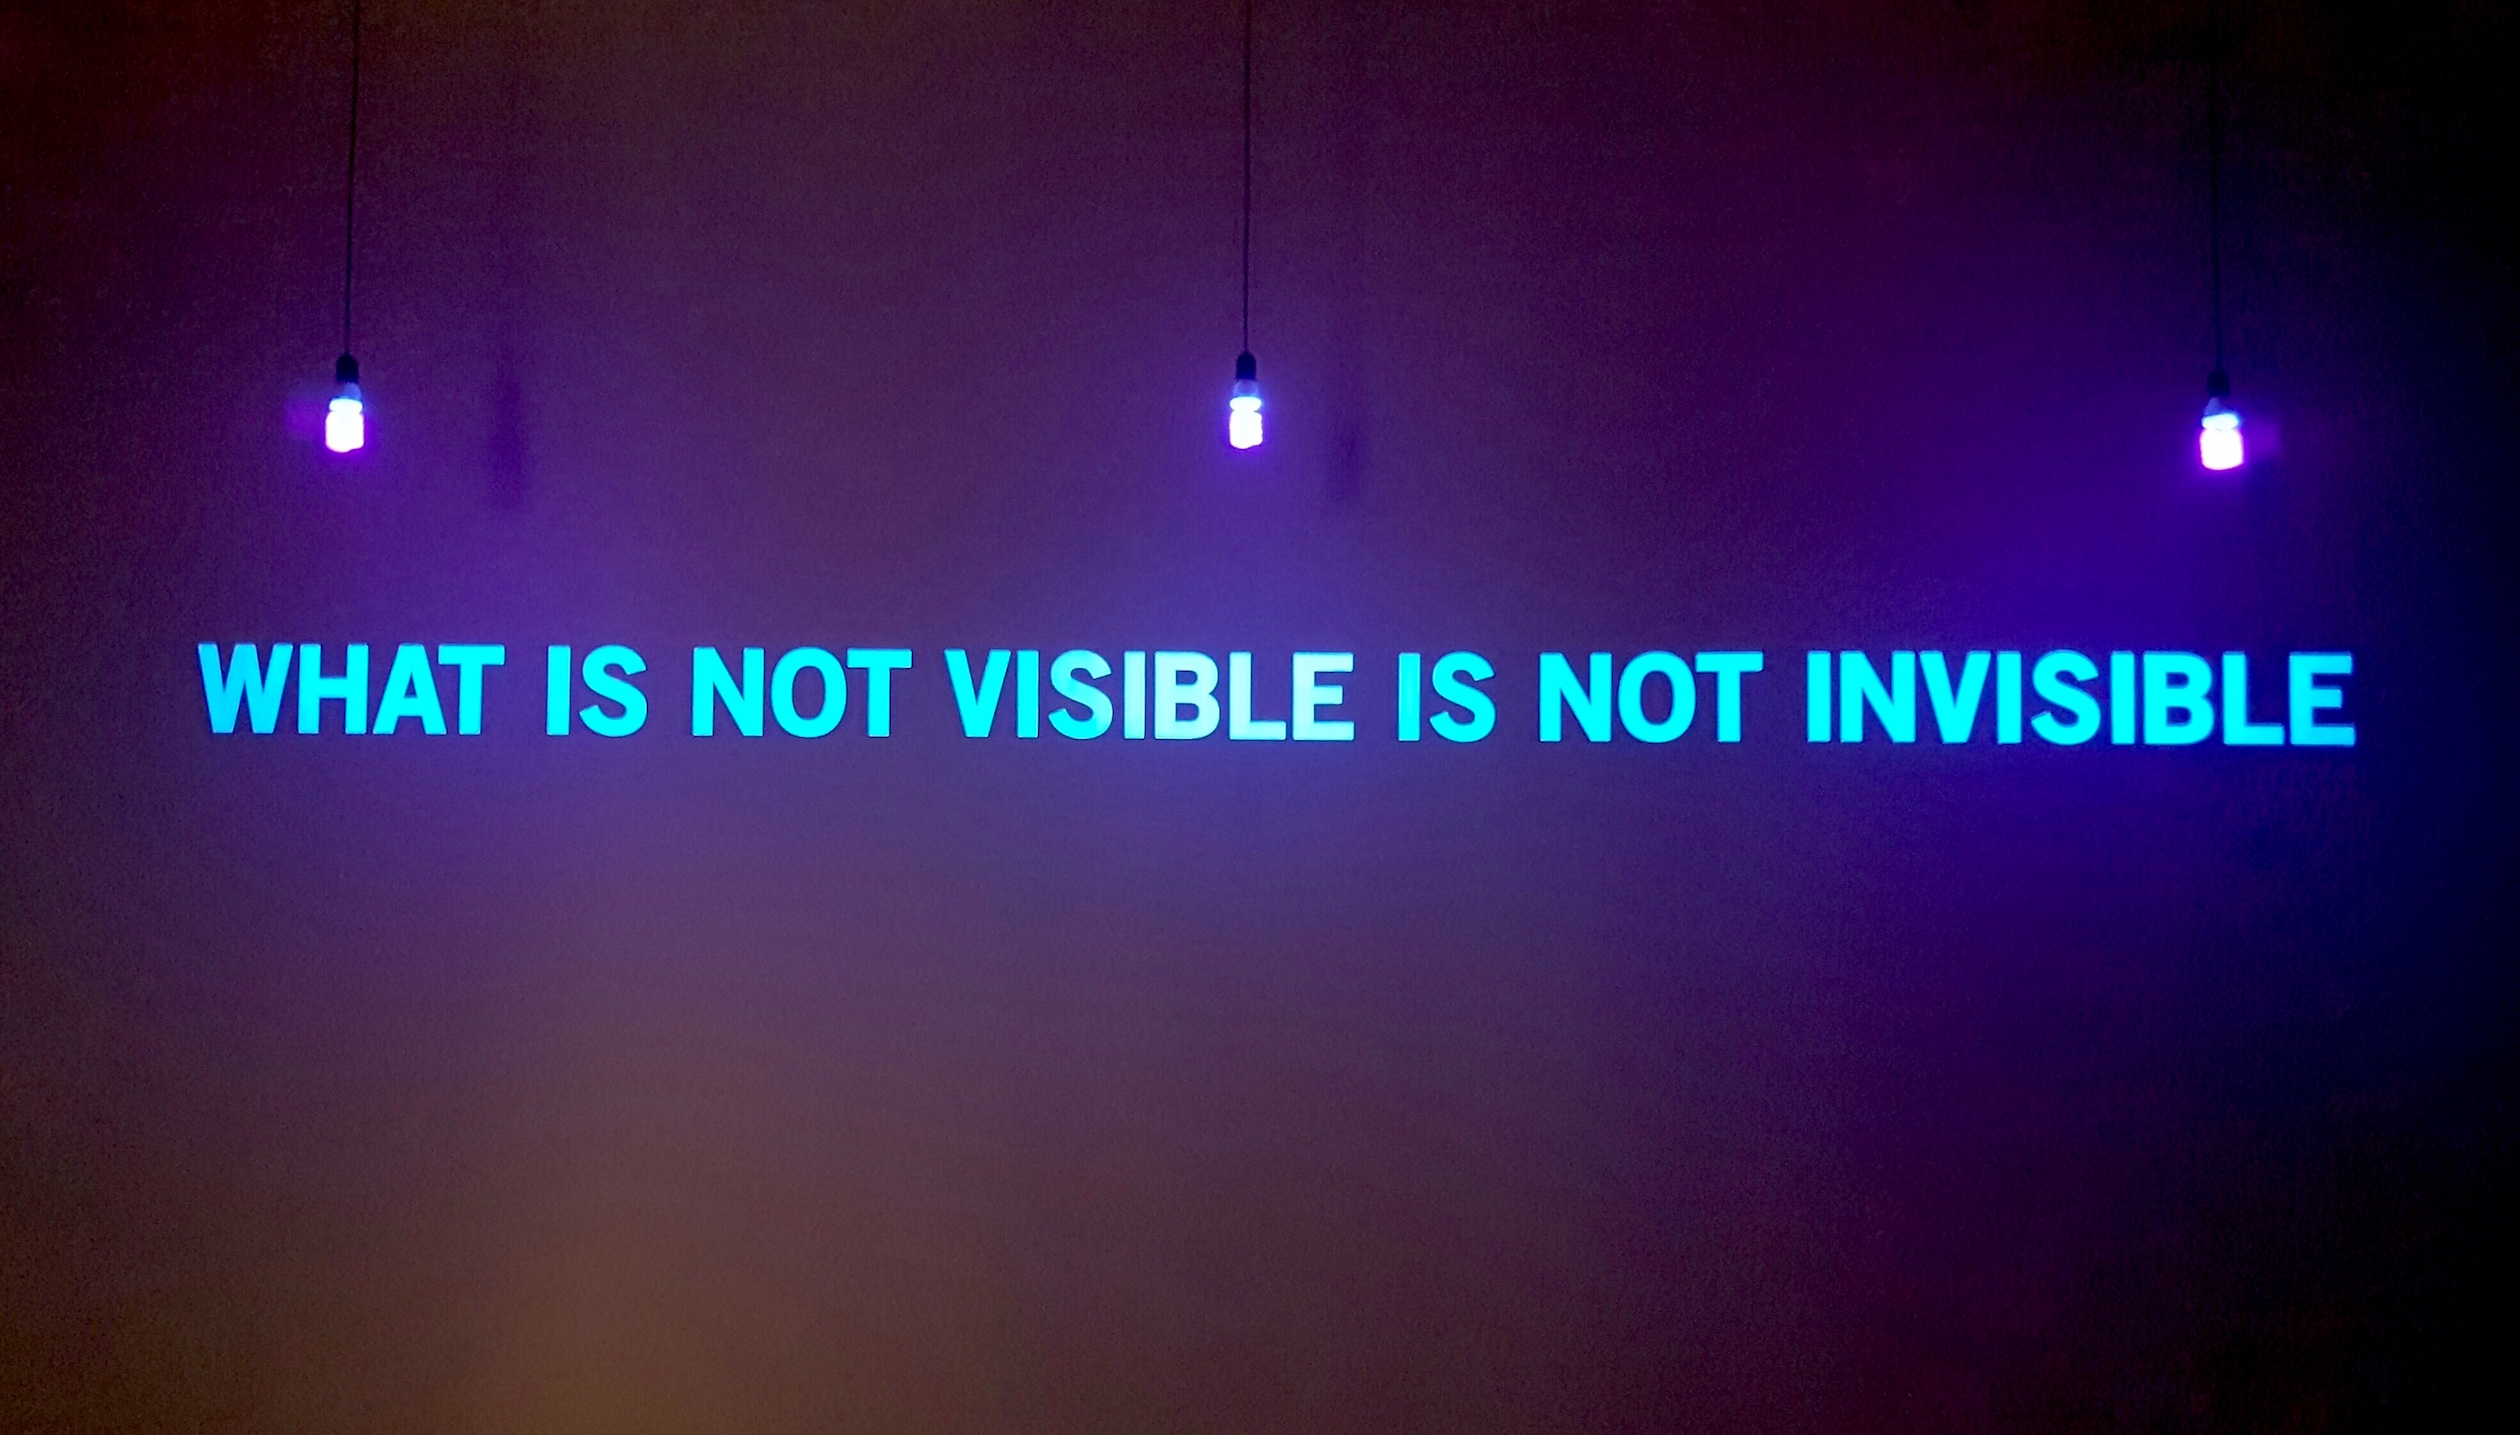 What is not visible is not invisible (2008), Julien Discrit